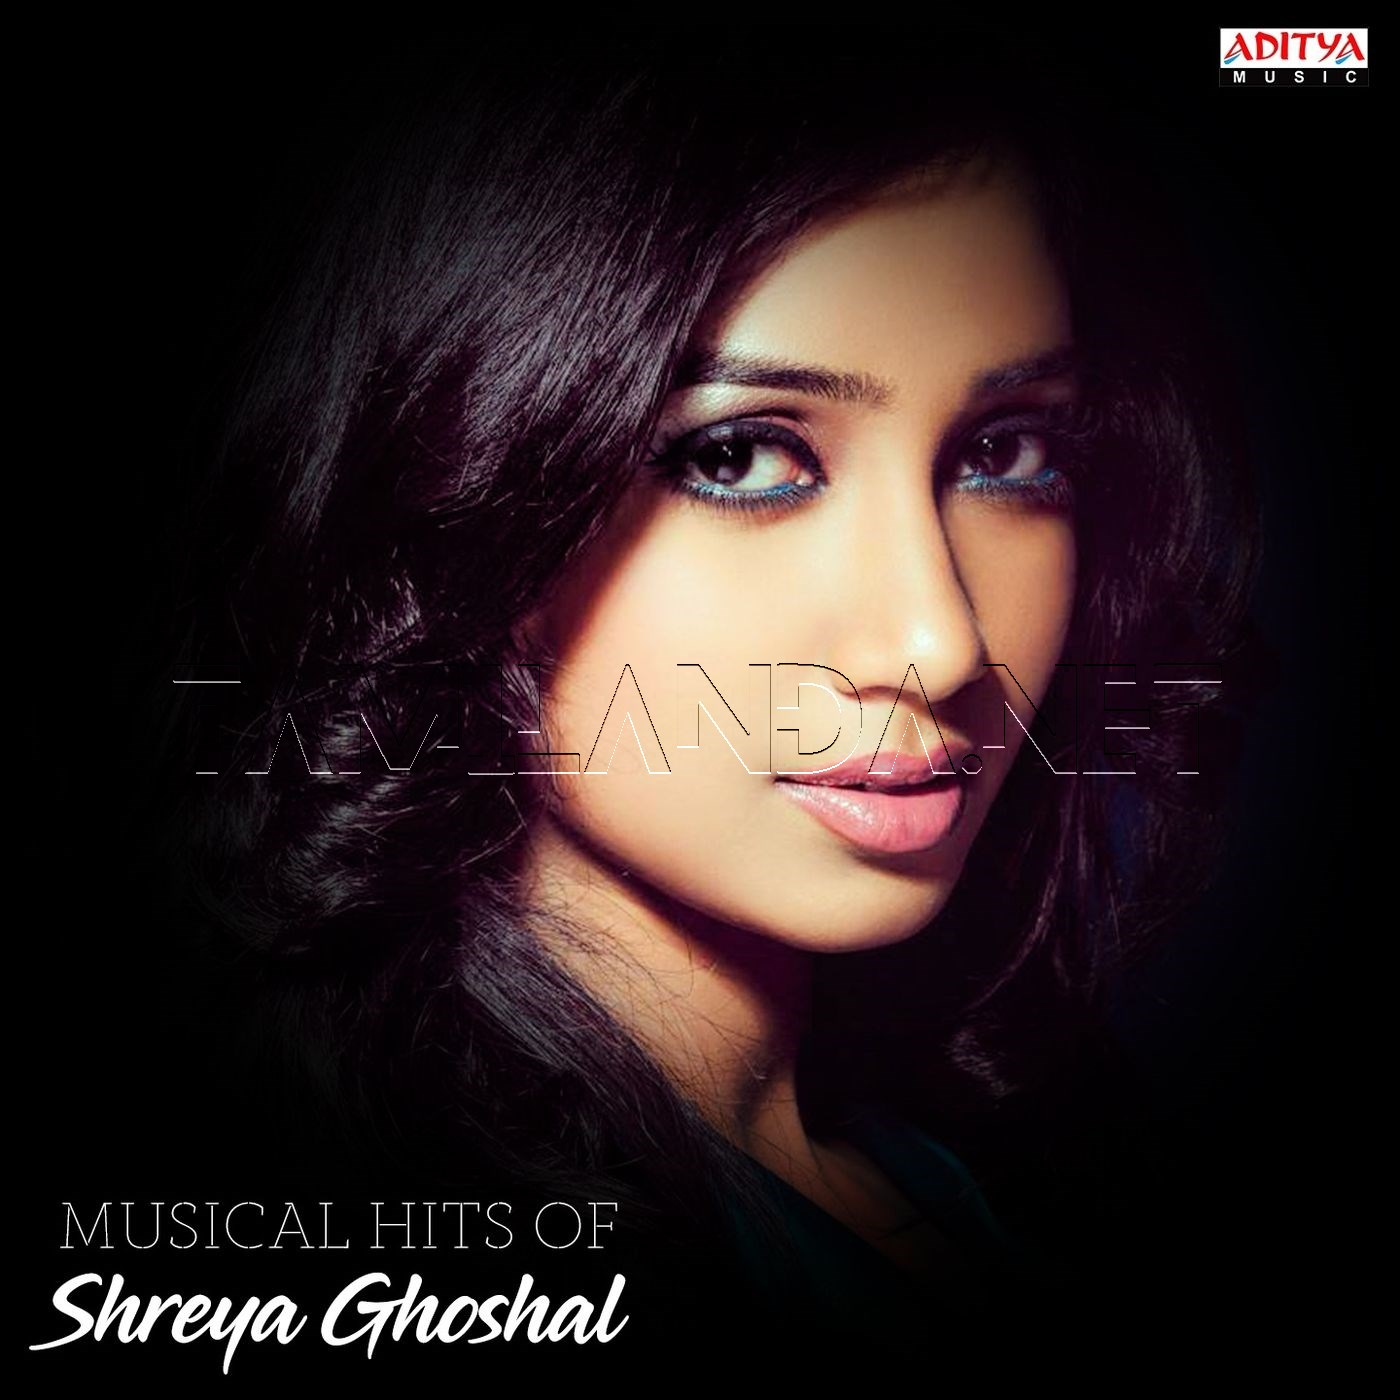 Musical Hits of Shreya Ghoshal [Telugu] (2019)